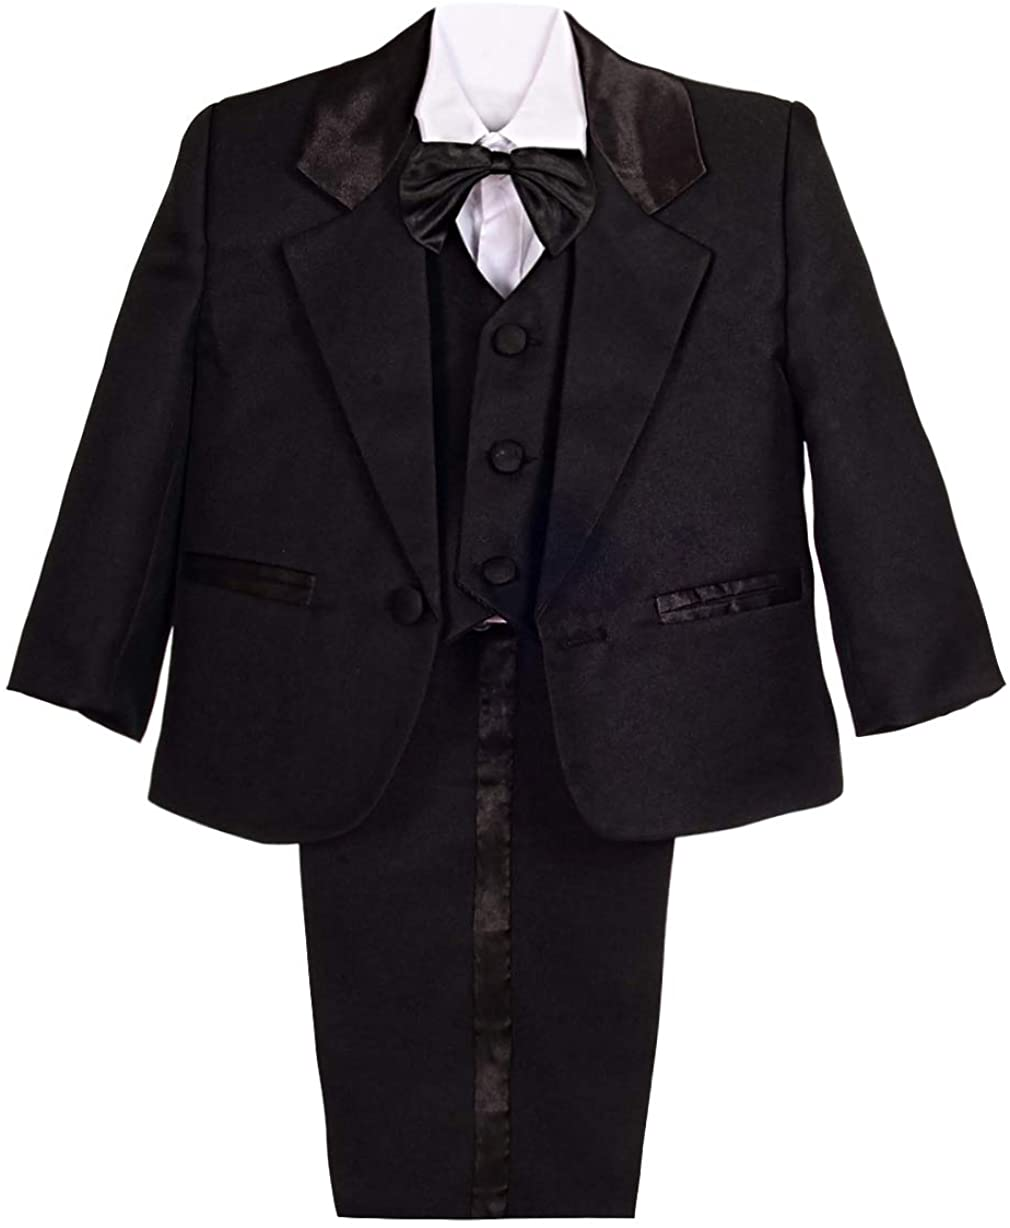 Dressy Daisy Baby Boy' 5 Pcs Set Formal Tuxedo Suits No Tail Wedding Christening Outfits